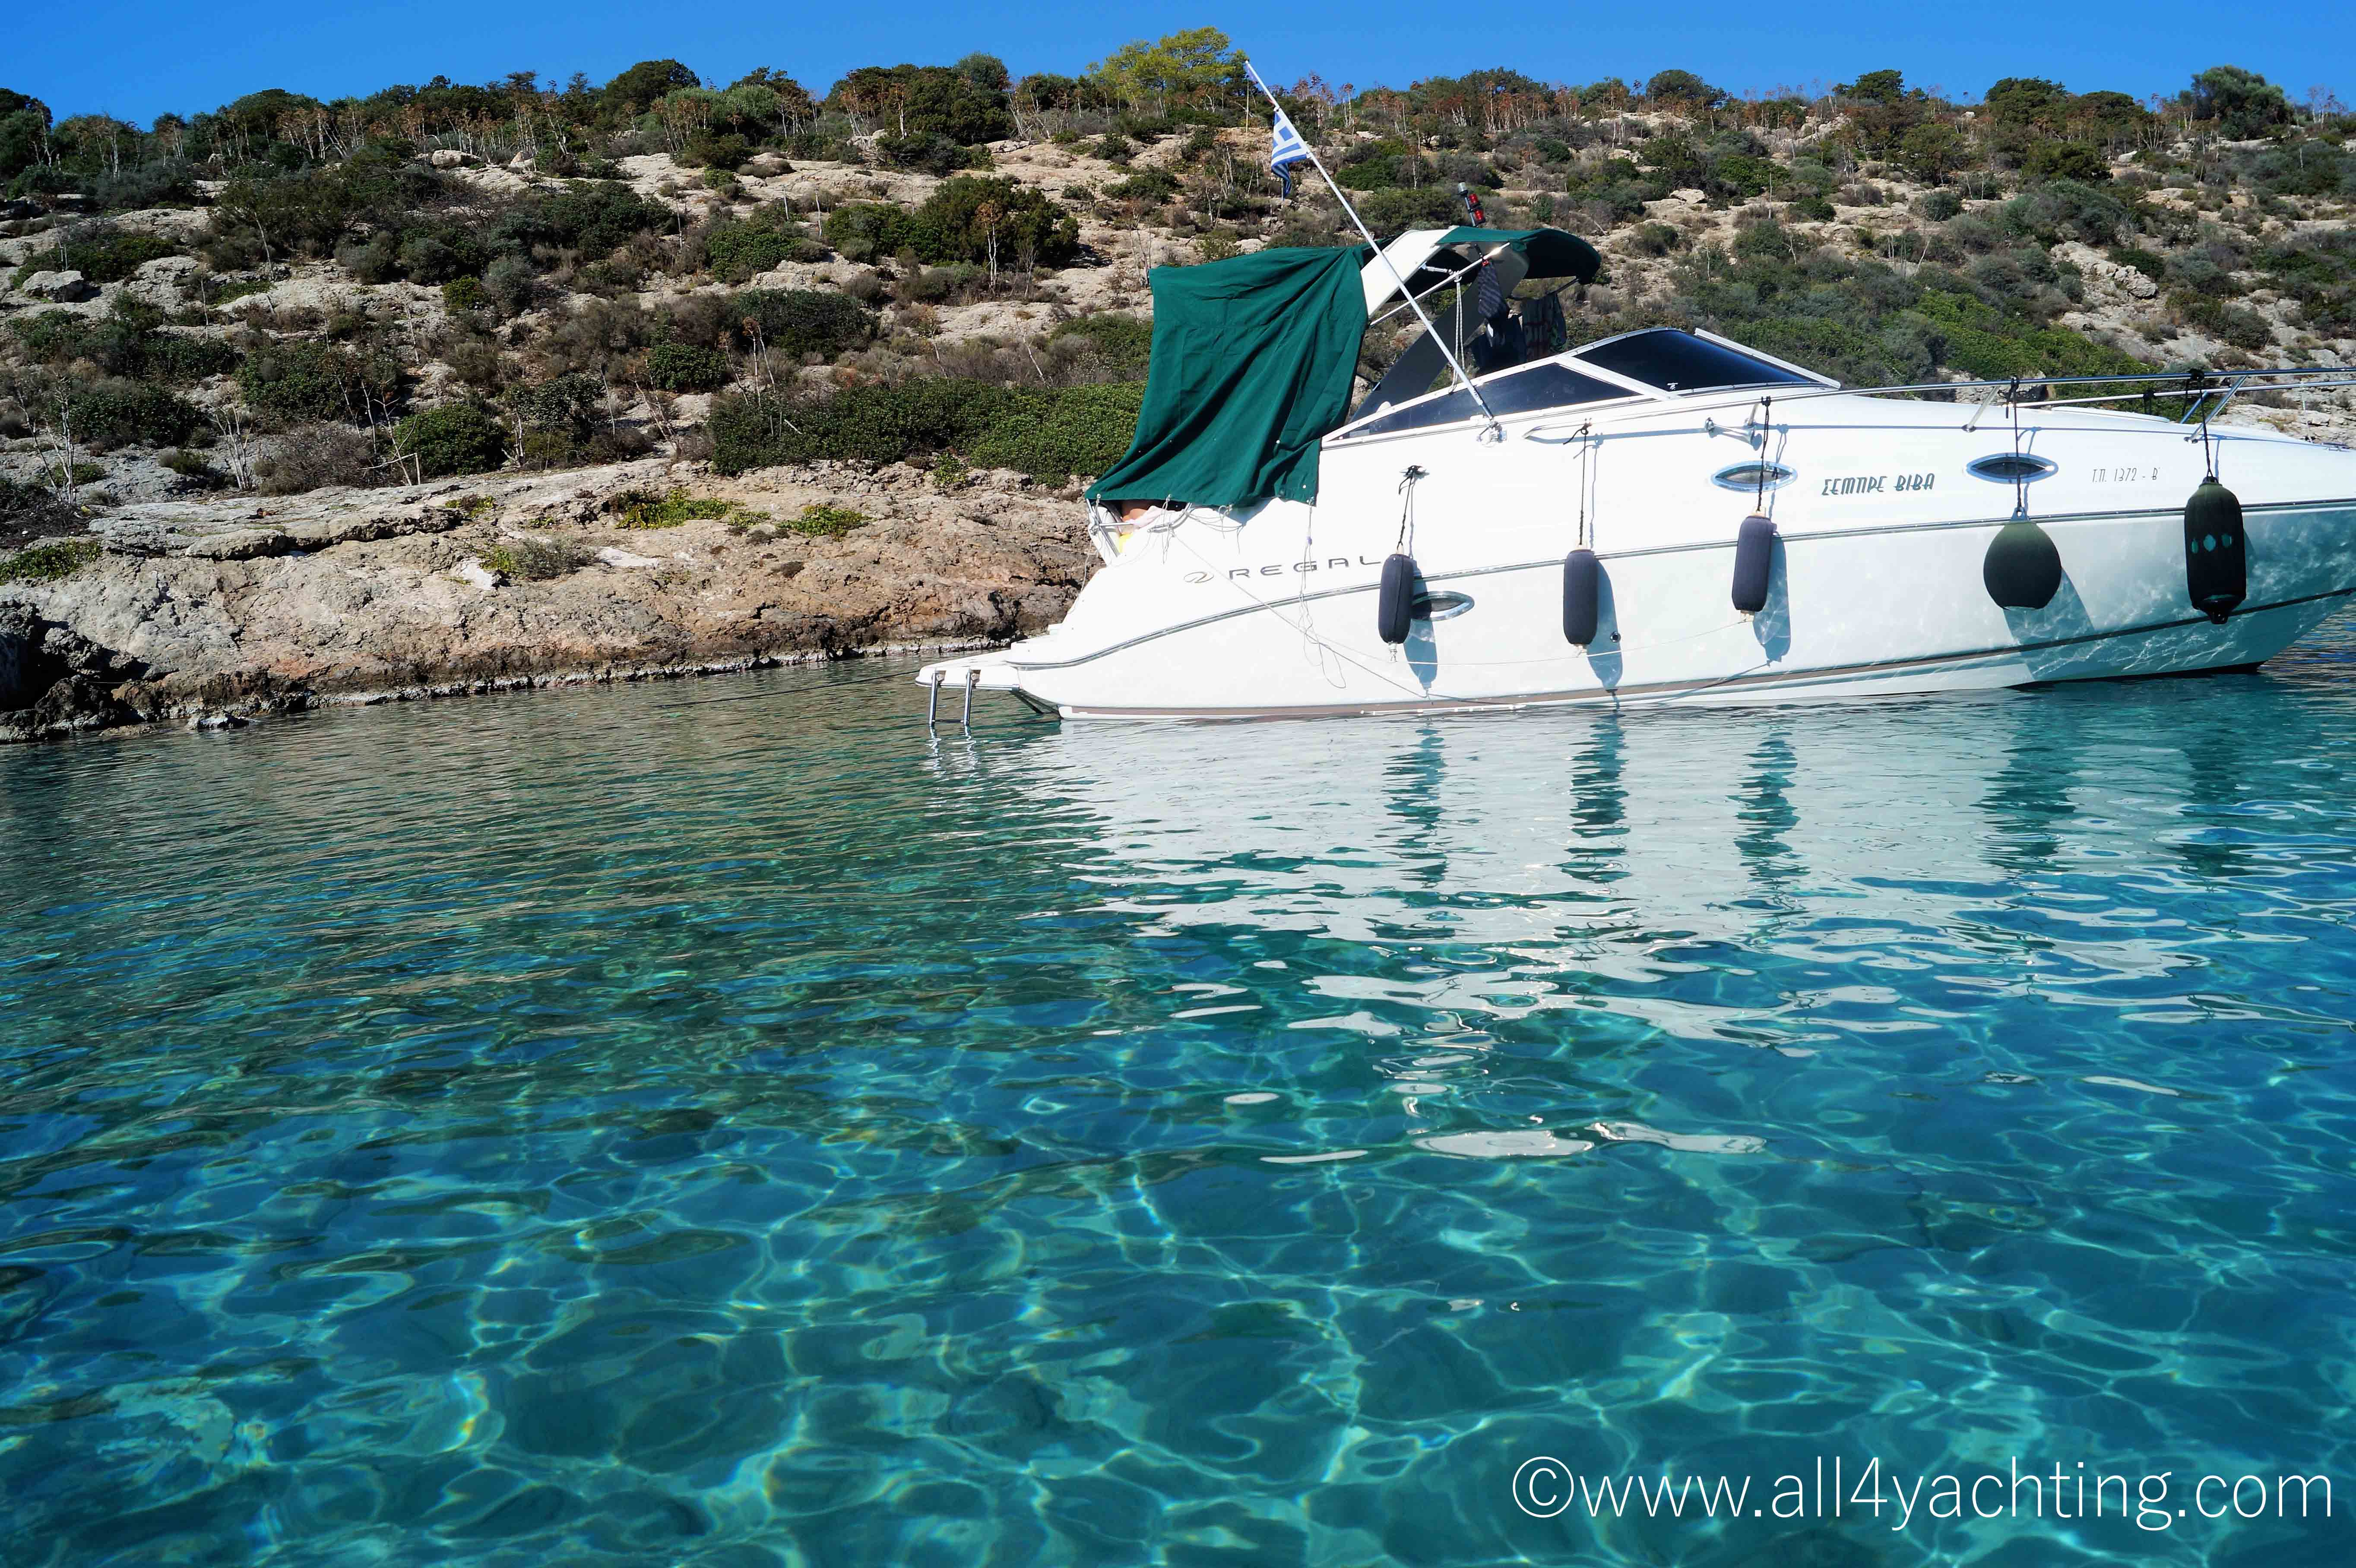 Fleves Islet, Vouliagmeni, Athens Coasts